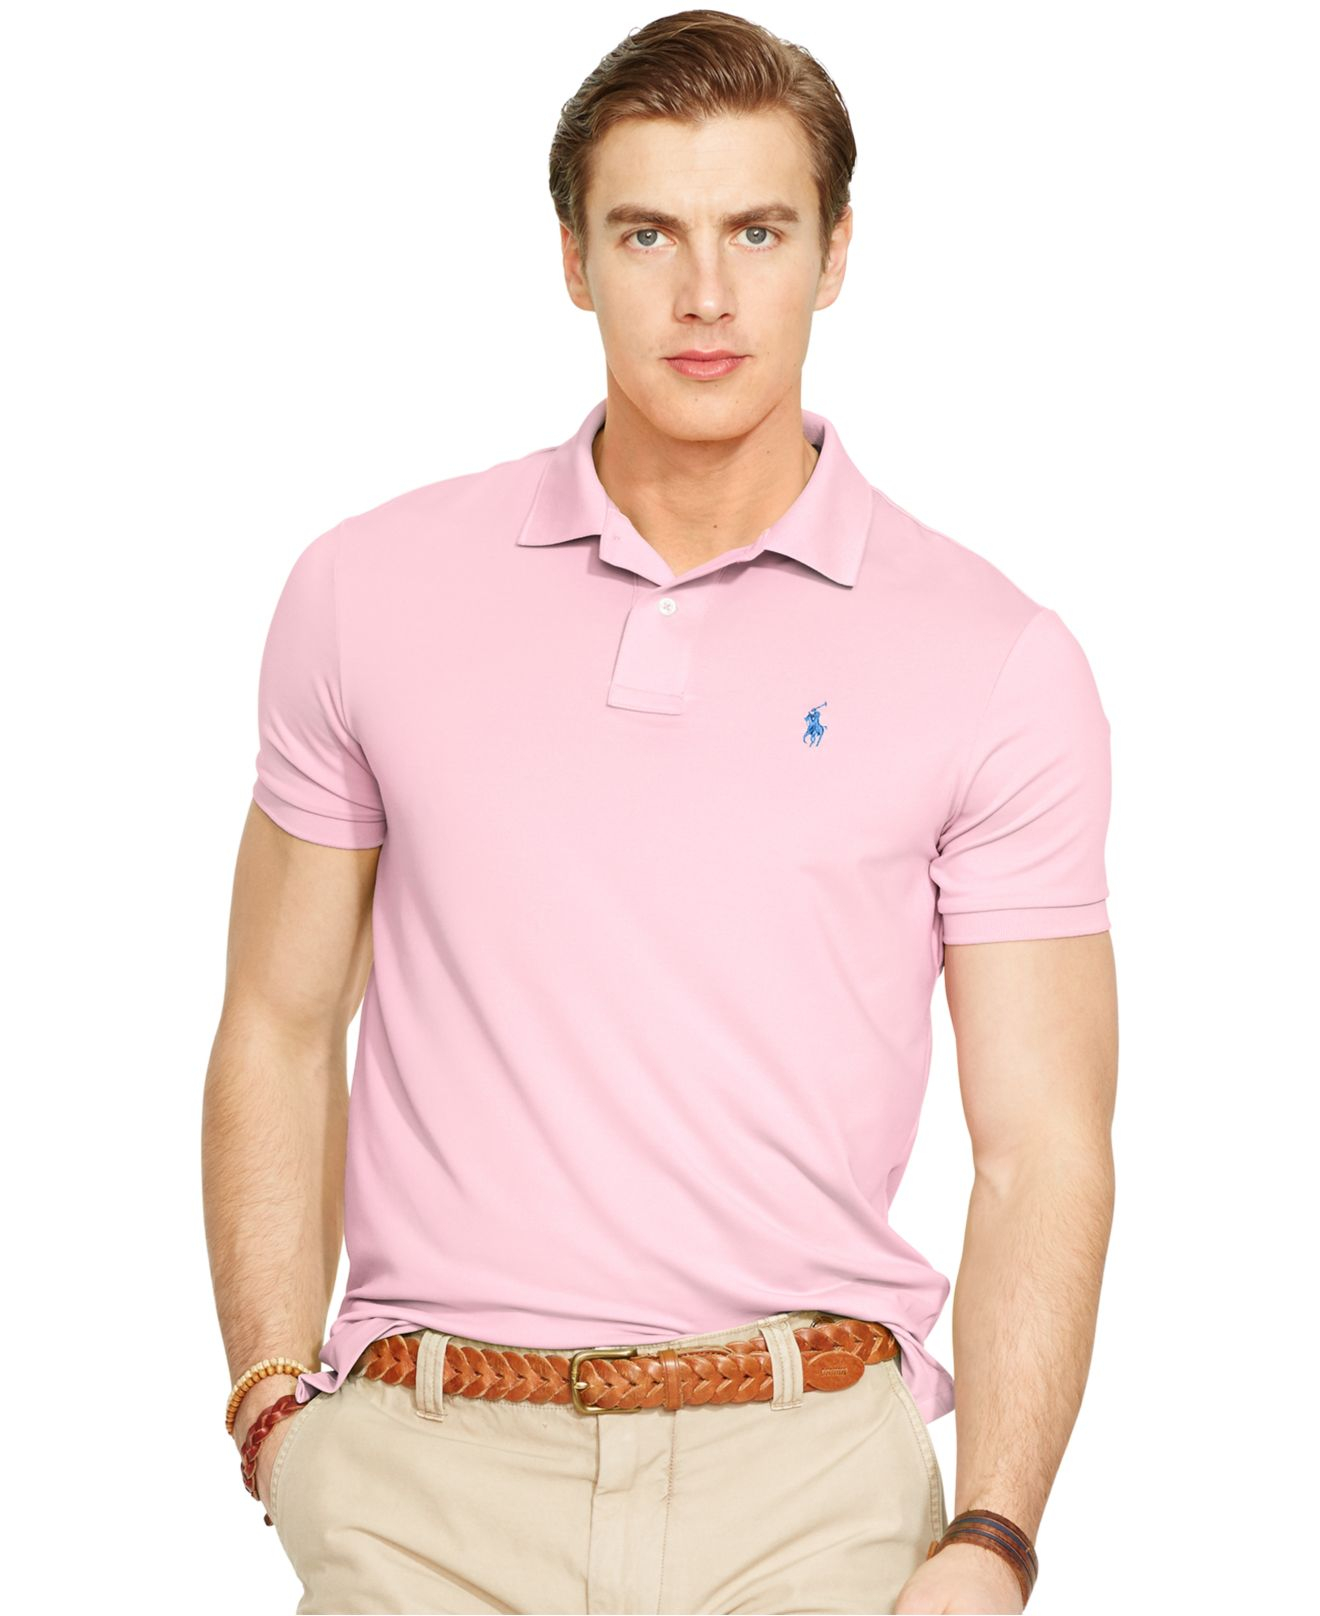 Lyst polo ralph lauren performance jersey polo shirt in for Man in polo shirt